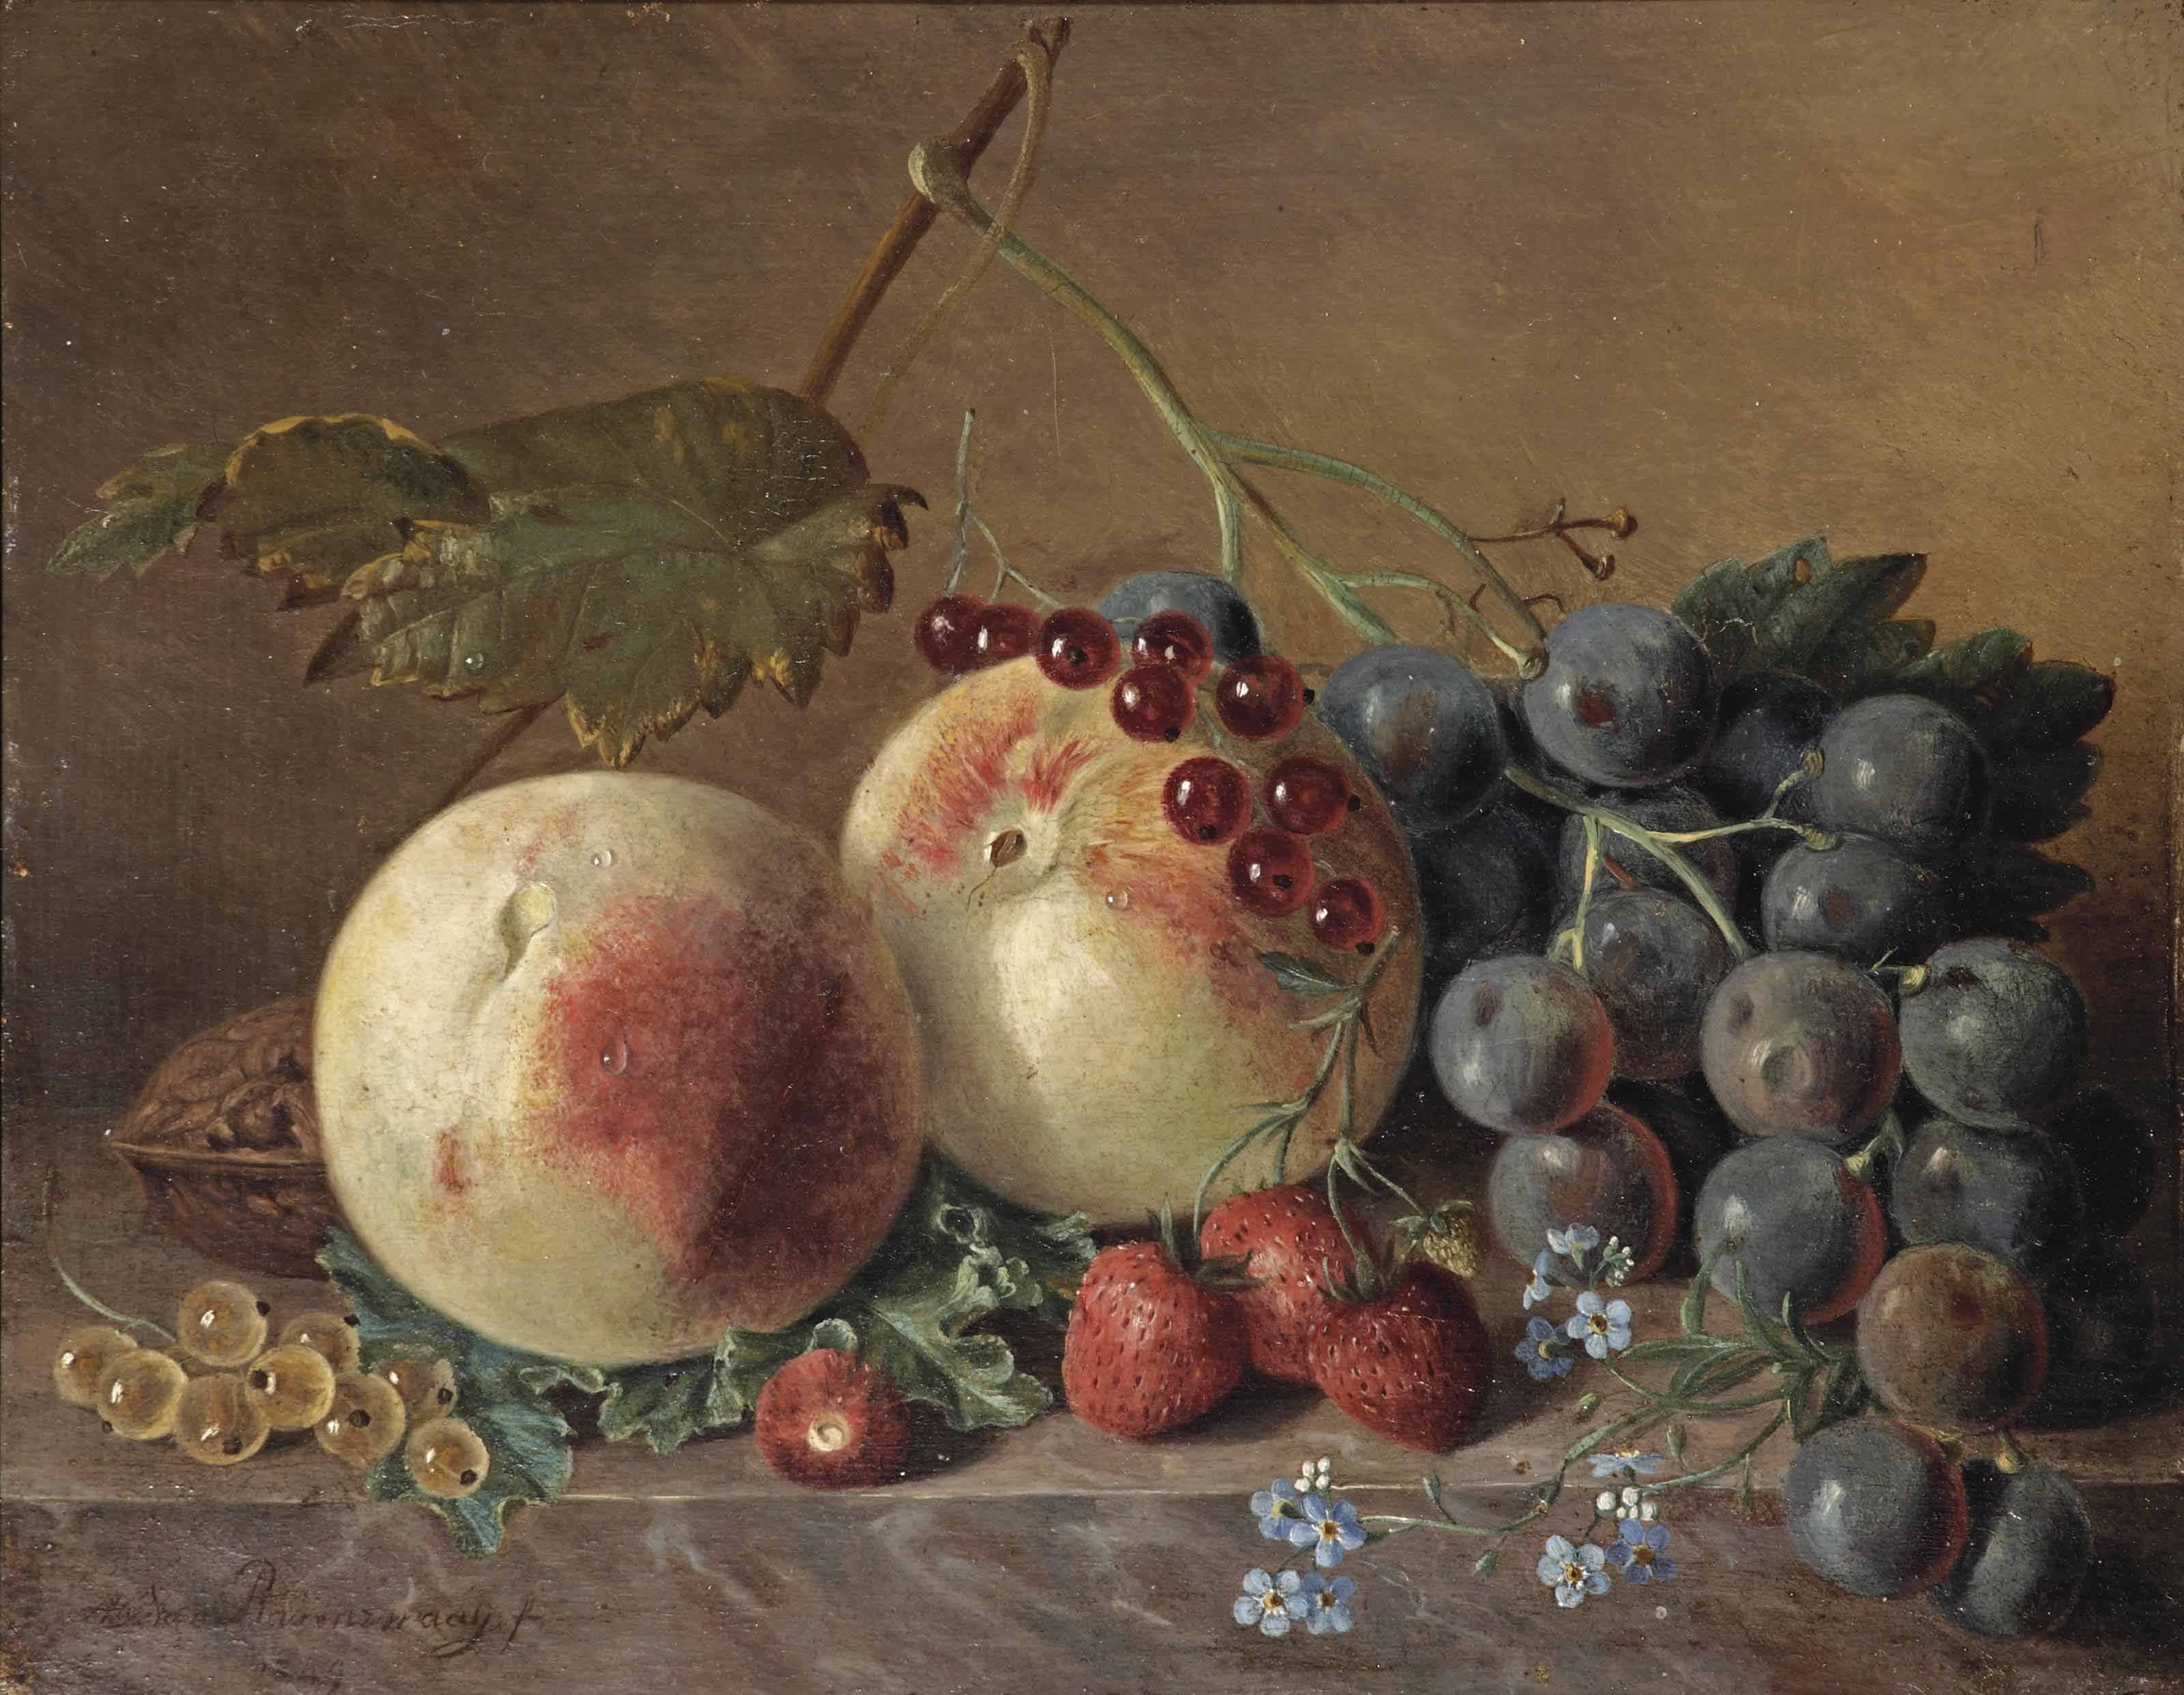 Peaches, grapes, wild strawberries, red and white currants, forget-me-nots and a walnut on a marble ledge